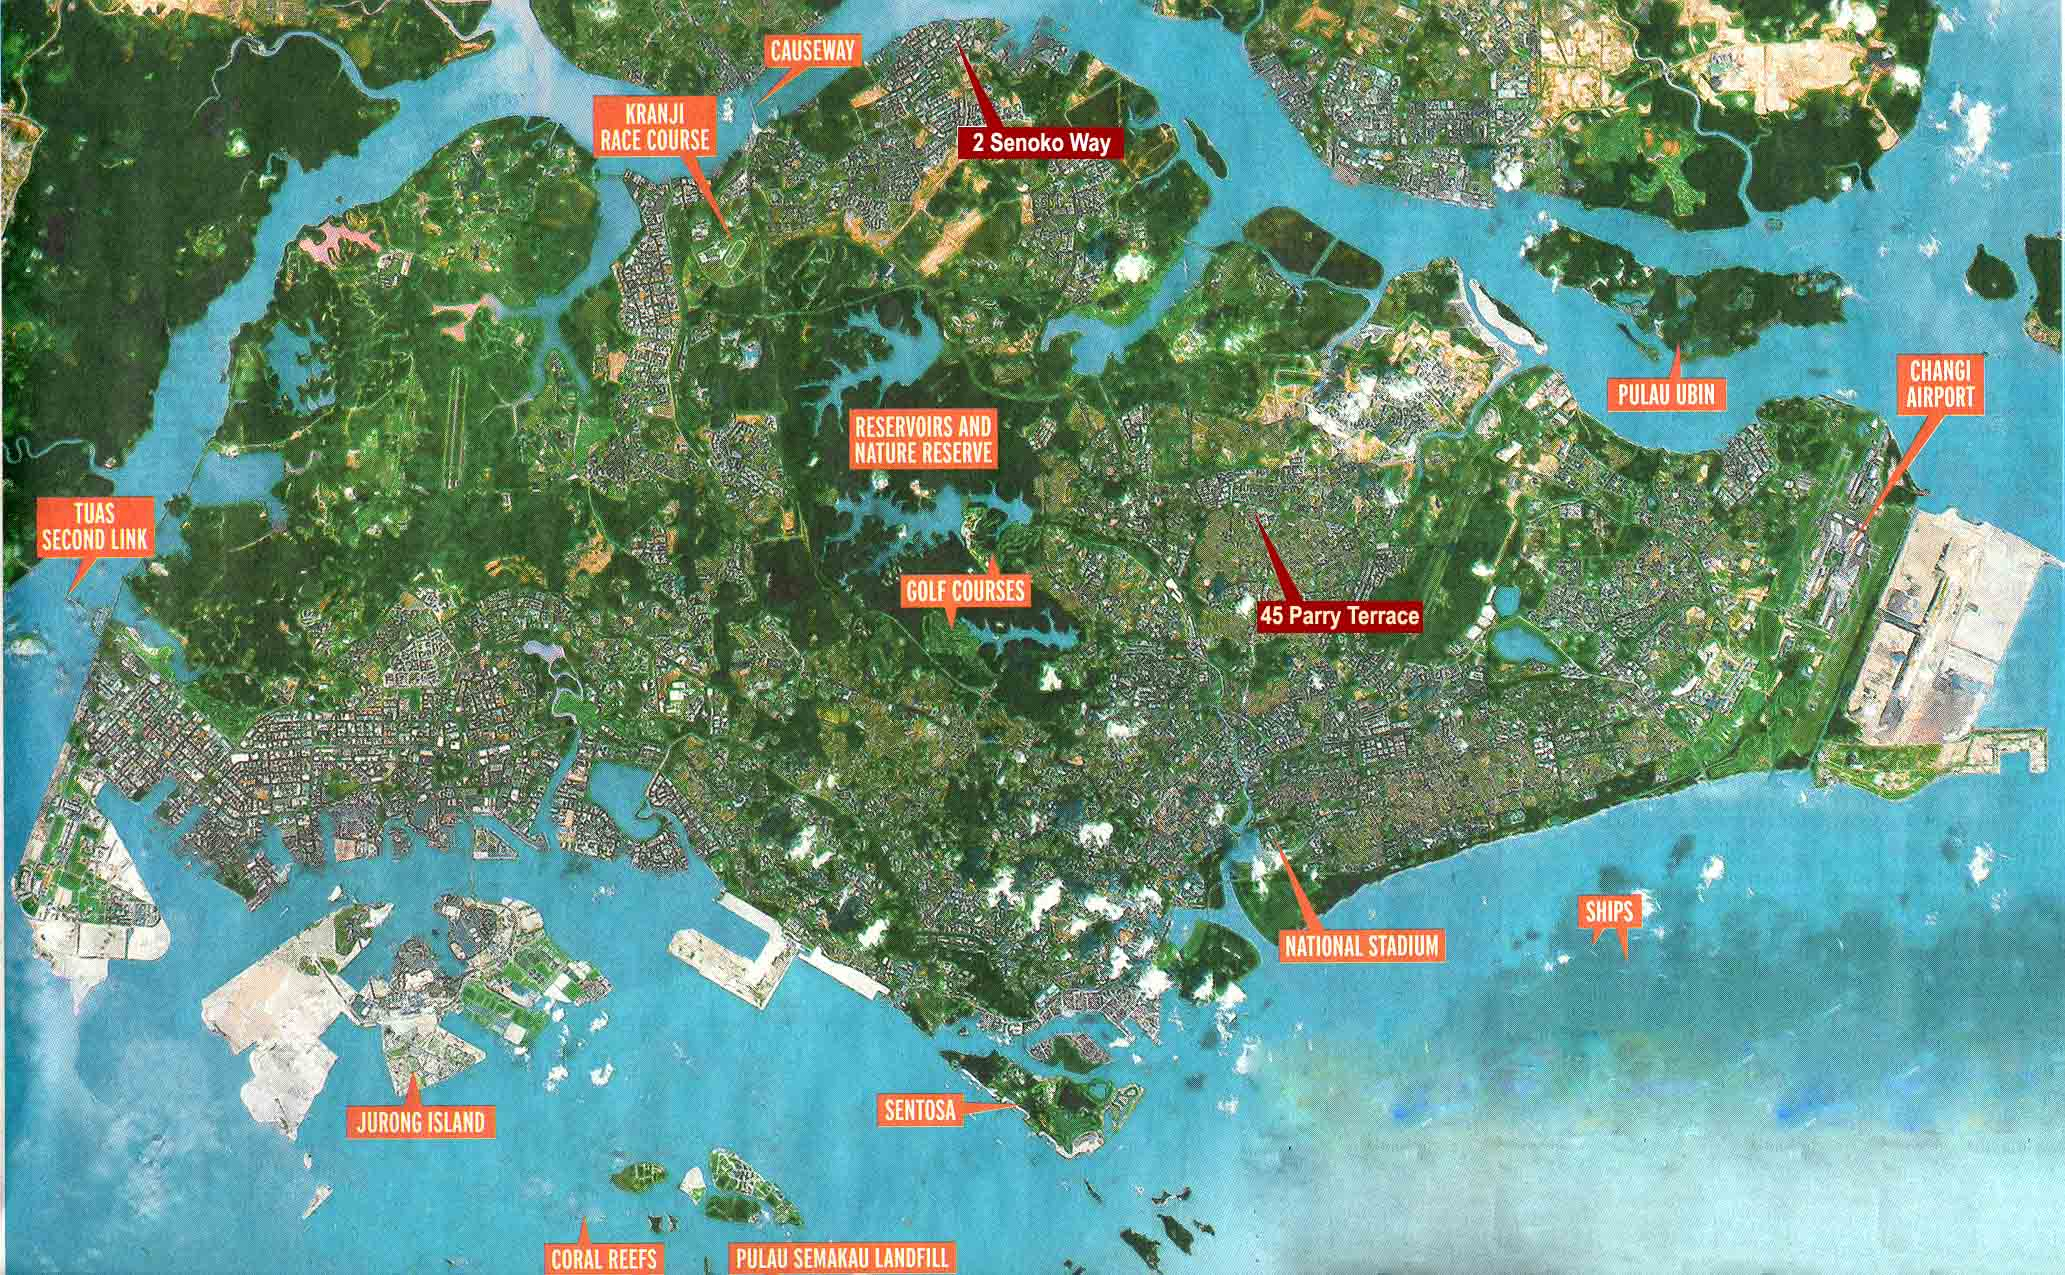 Large Singapore City Maps For Free Download And Print | High - Printable Satellite Maps